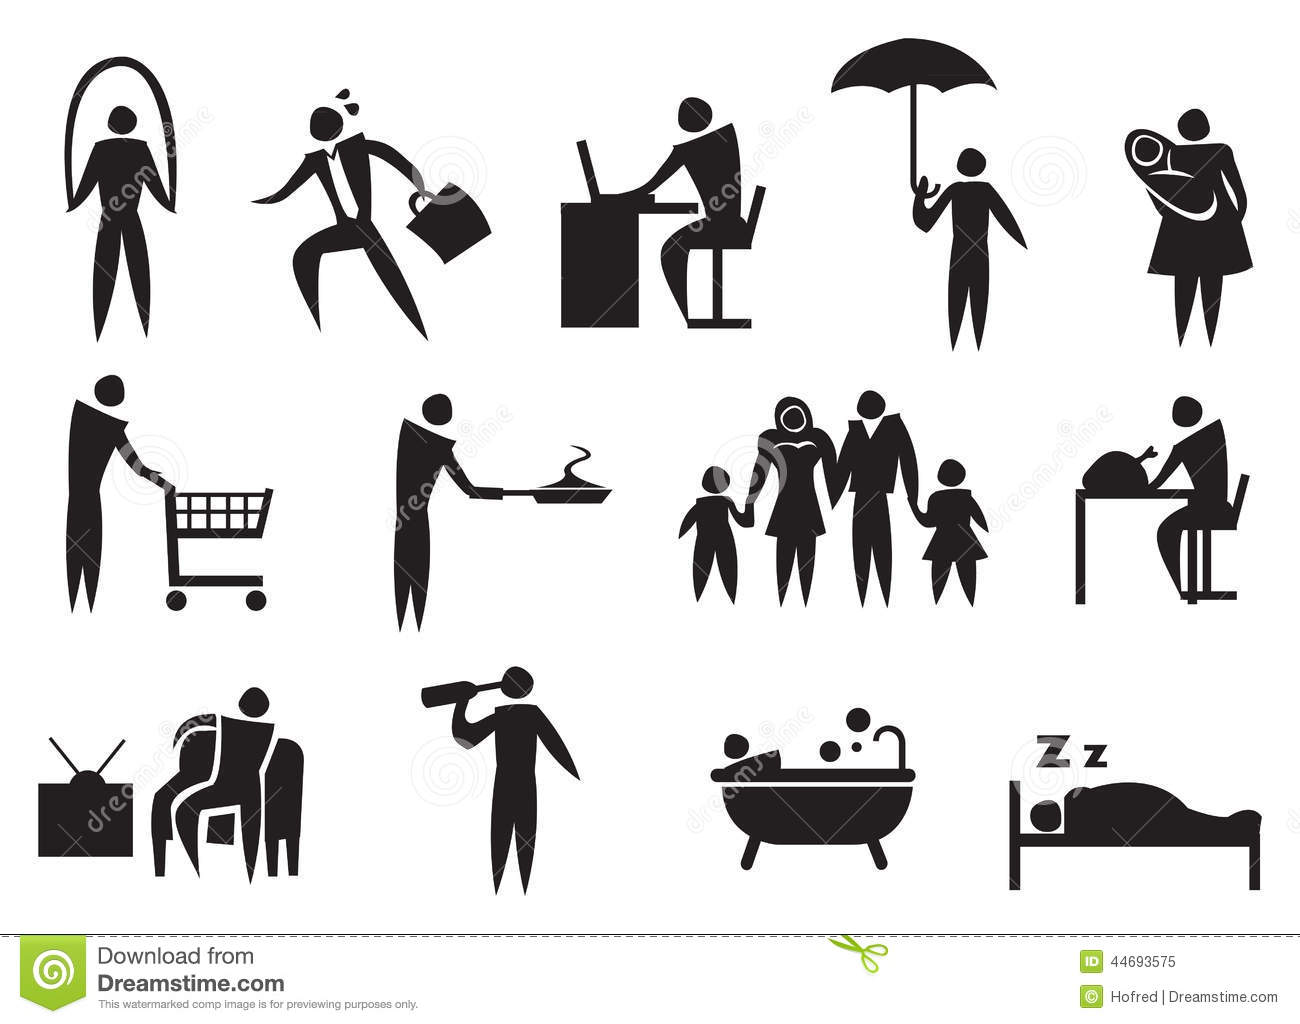 Icon Of Man Doing His Daily Routine. Stock Photo - Image: 44693575